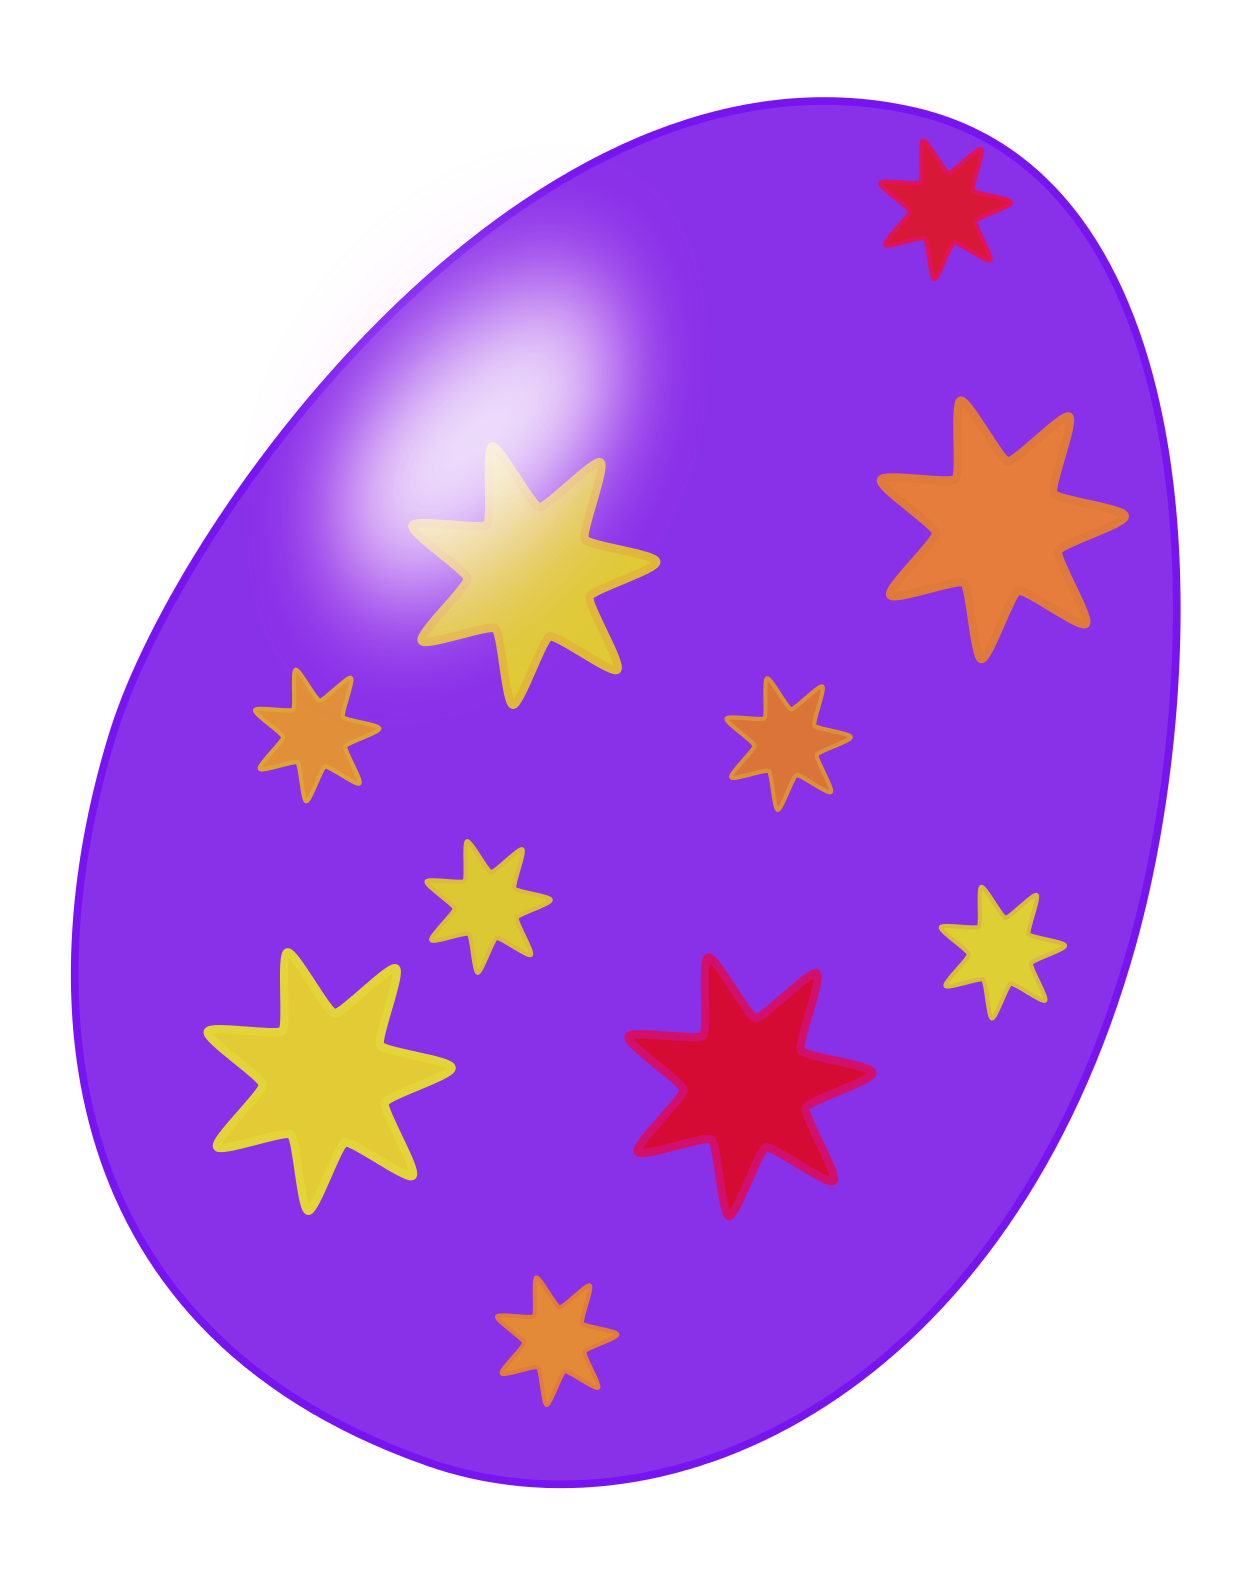 Easter Eggs Clip Art   Images   Free For Commercial Use